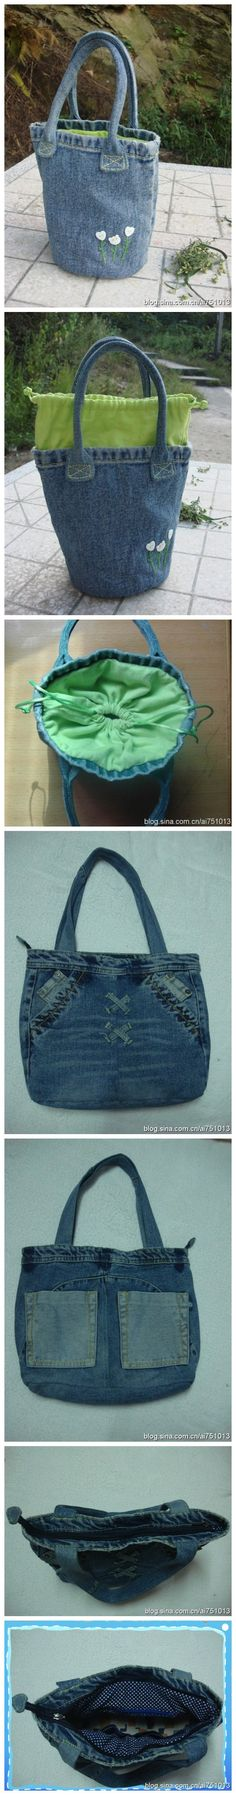 bags from repurposed jeans Mehr